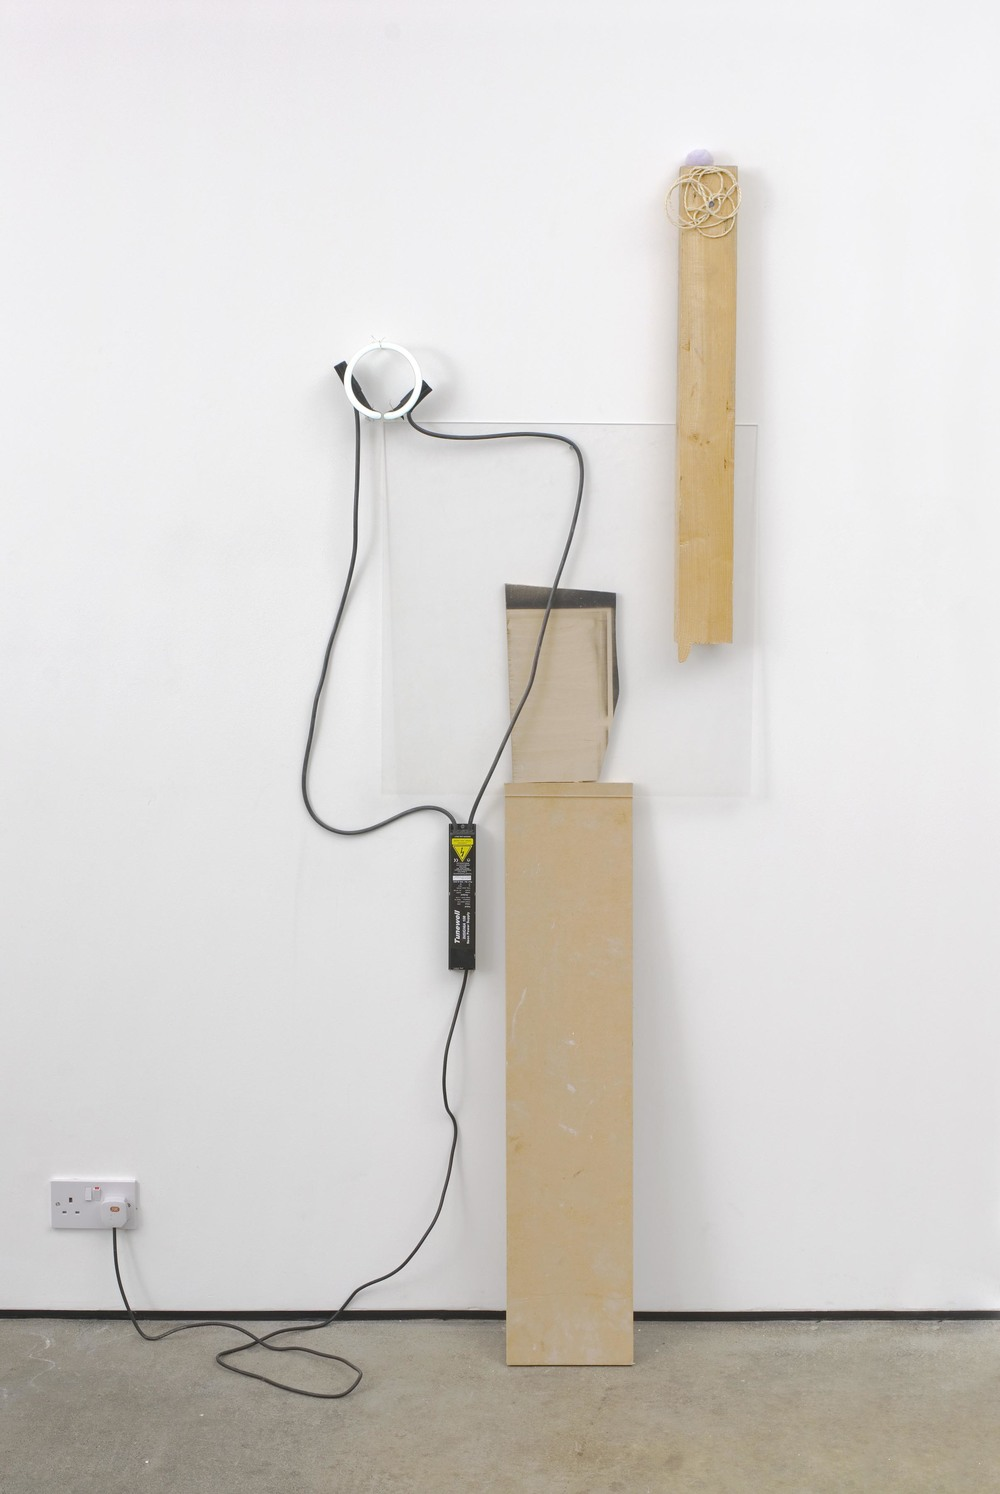 Rebecca Warren Husband Five 2005 Mixed Media with Neon and Transformer 170 x 100 x 10 cm